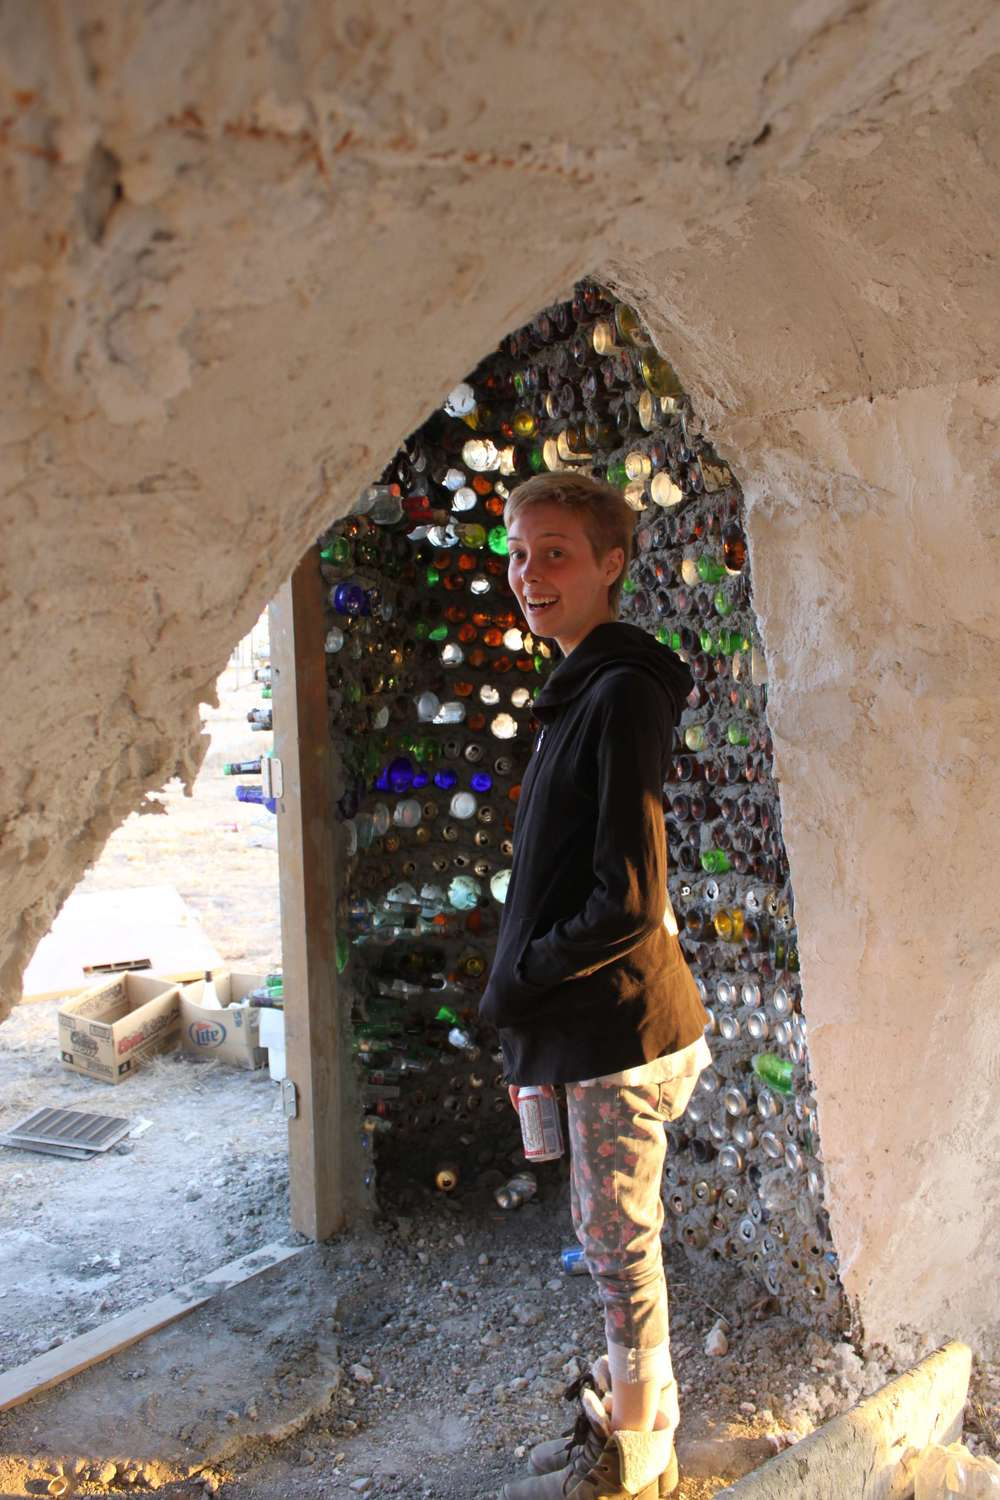 Angie in a castle ofold beer cans and bottles.